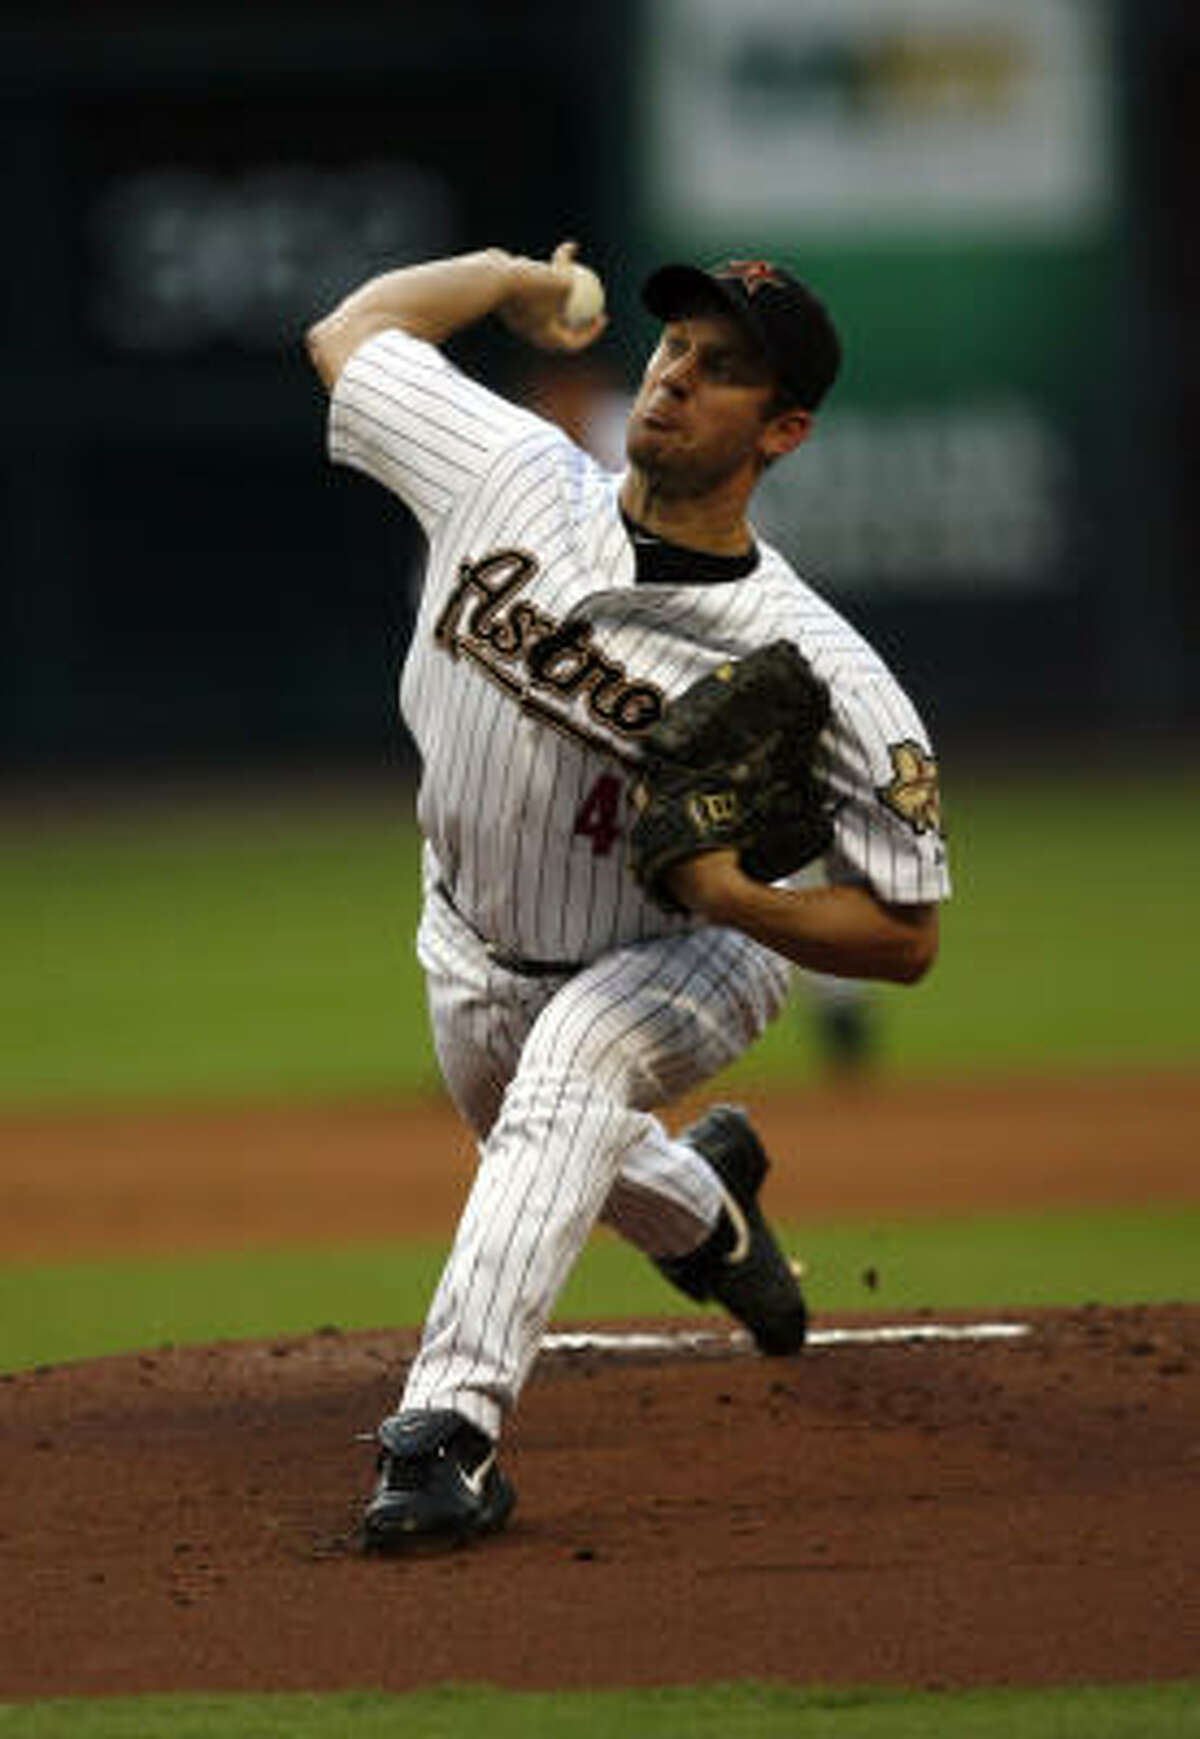 Righthander Roy Oswalt has asked the Astros to consider trading him to a contender.